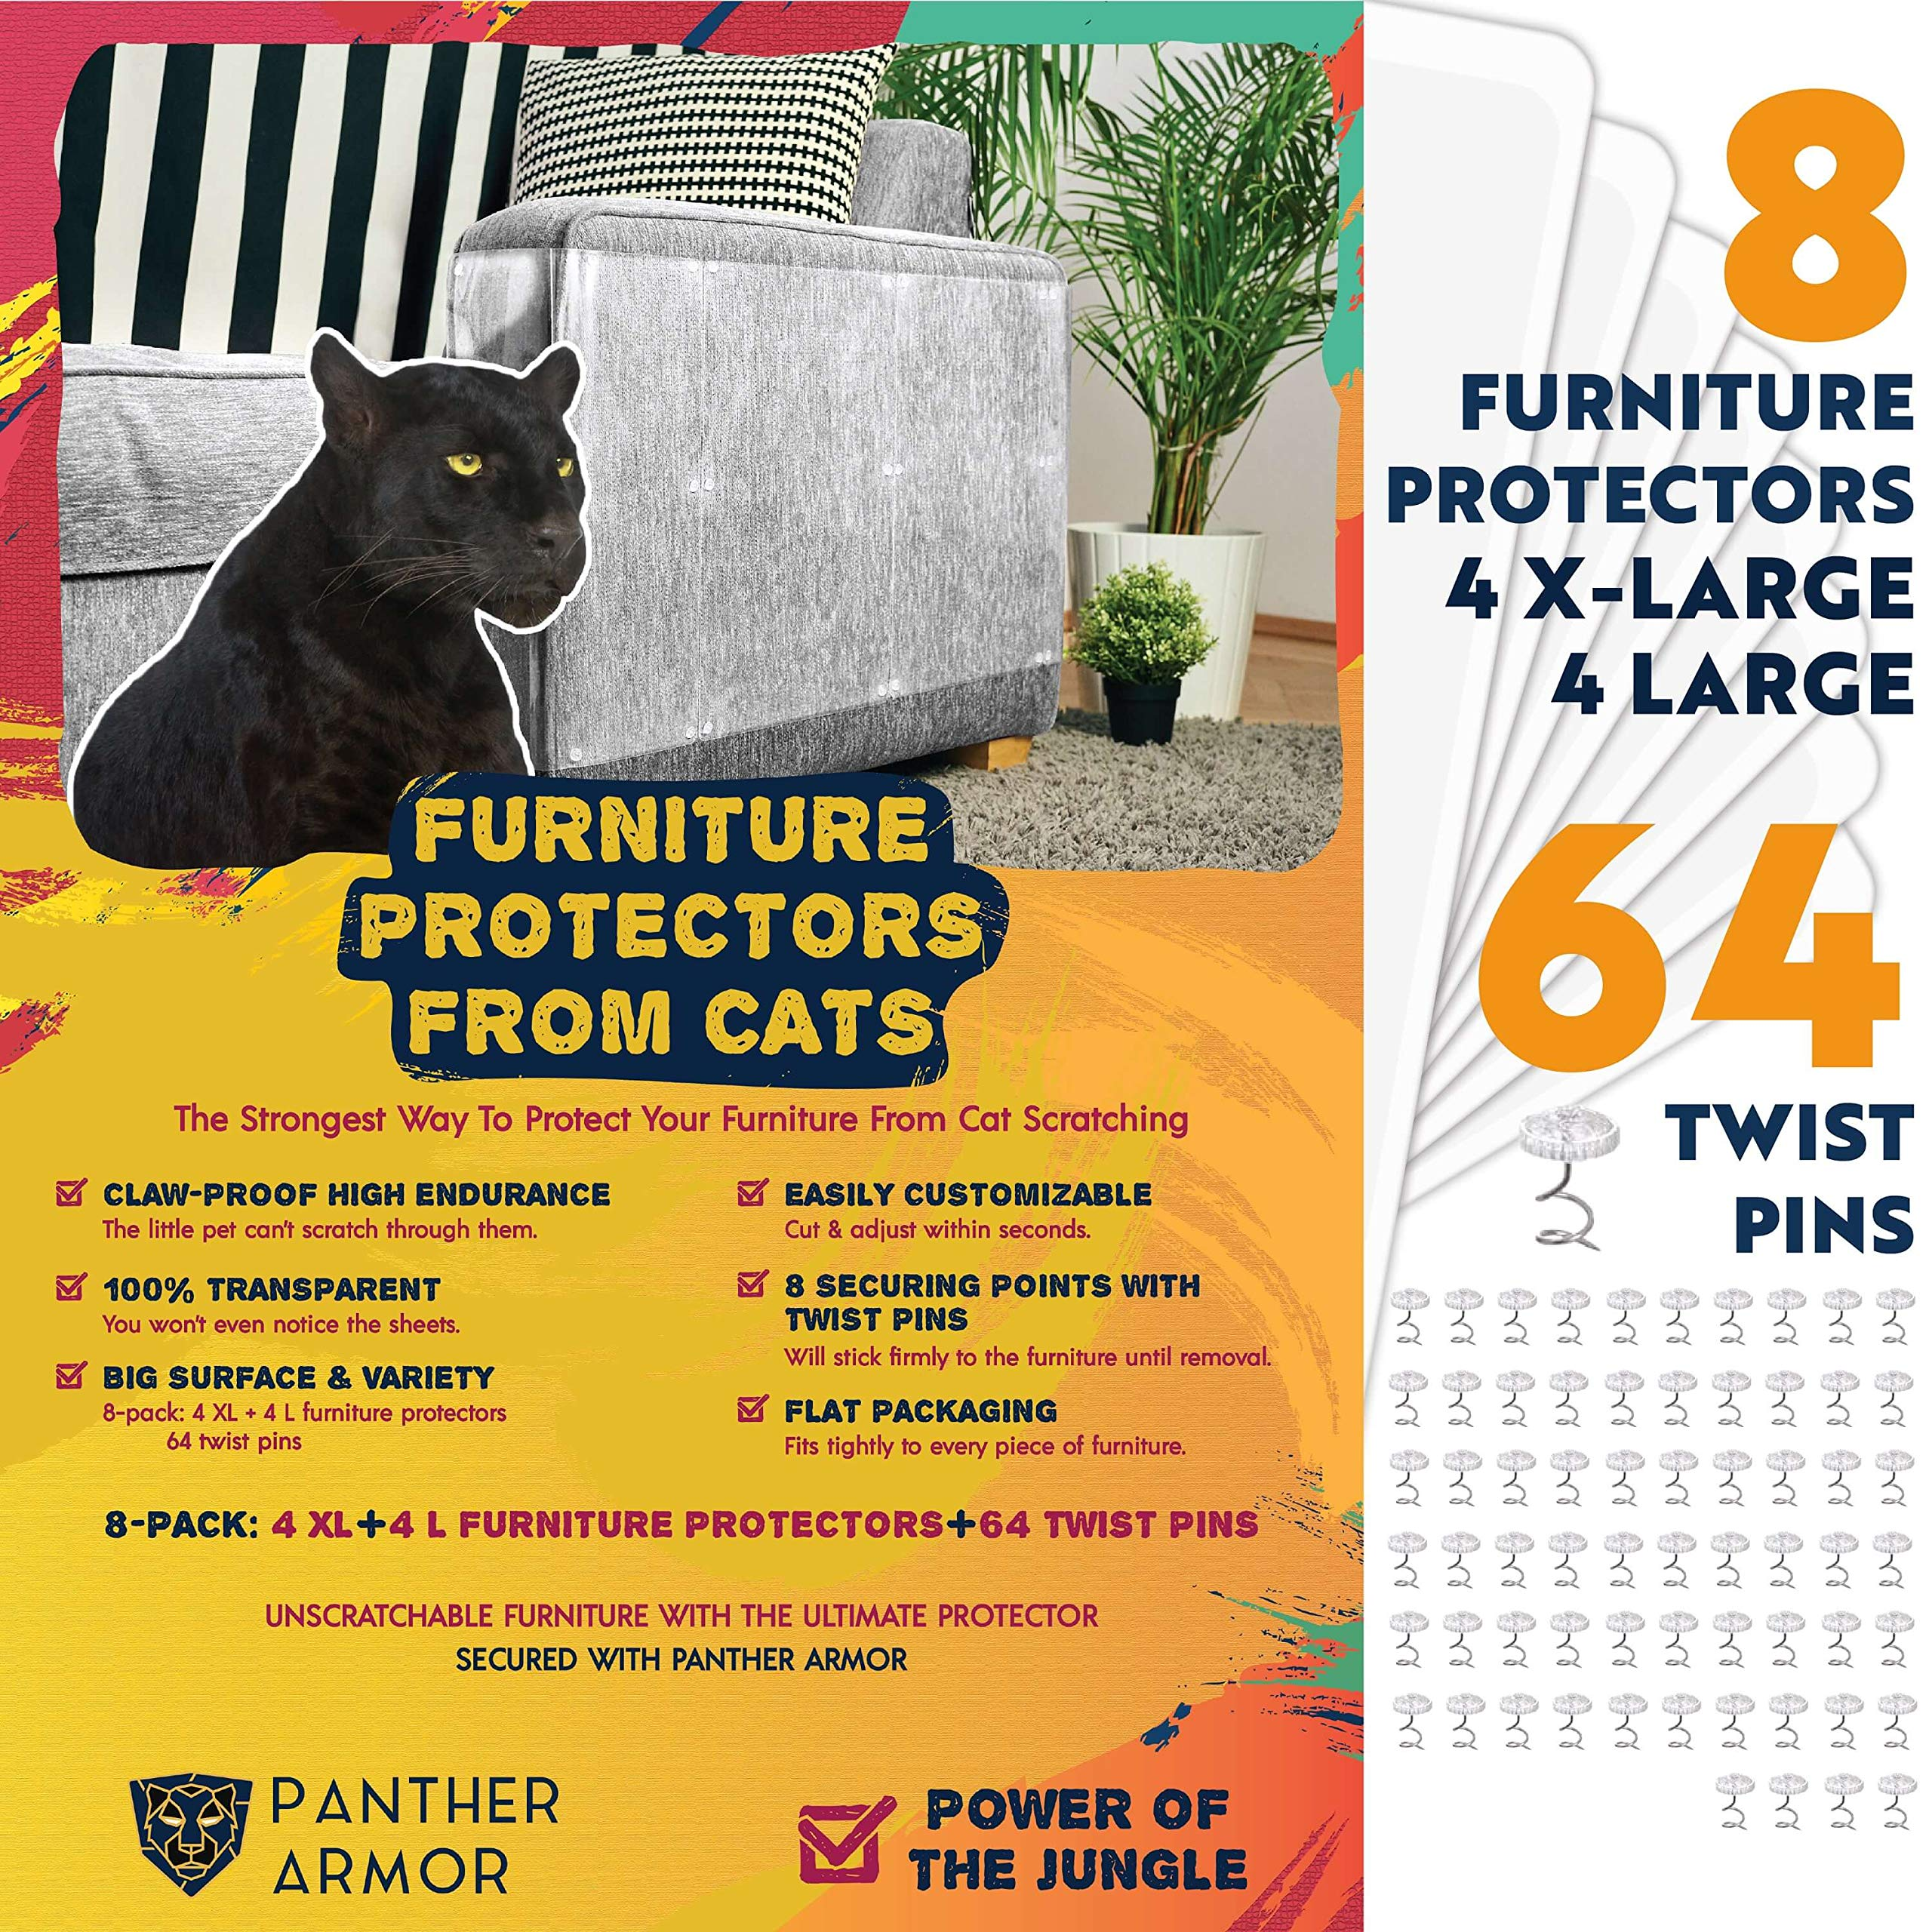 Panther Armor Furniture Protectors from Cat Scratch - 8(Eight)-Pack - Couch Guards for Cats - 4-Pack XL 17''L 12''W + 4-Pack Large 17''L 10''W Cat Scratch Deterrent - Couch Corner Cat Scratch Repellent by Panther Armor